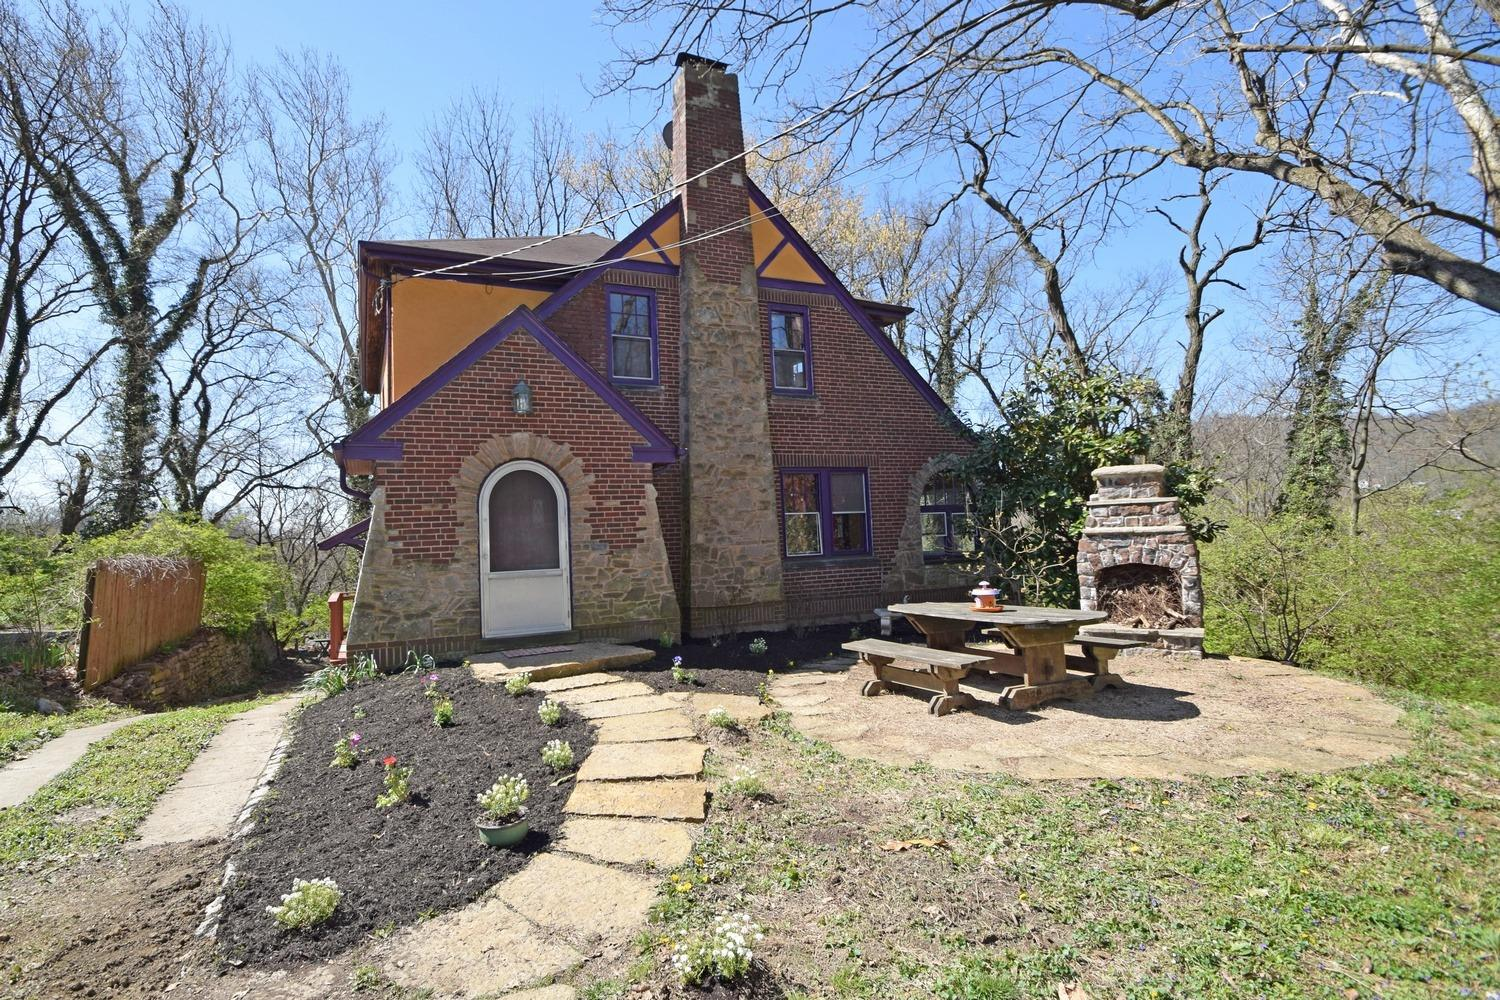 Hard to find Tudor nestled on 2 wooded parcels (1/2 acre total) on quiet cul de sac! Loaded w/ original character, nat'l woodwork, hardwood floors, built-ins. Handsome tile fireplace w/ ornamental + illuminated mantle. Solarium makes an ideal den or office w/ views of Mt Airy Forest + sunsets on the western horizon. Custom patio courtesy HGTV!